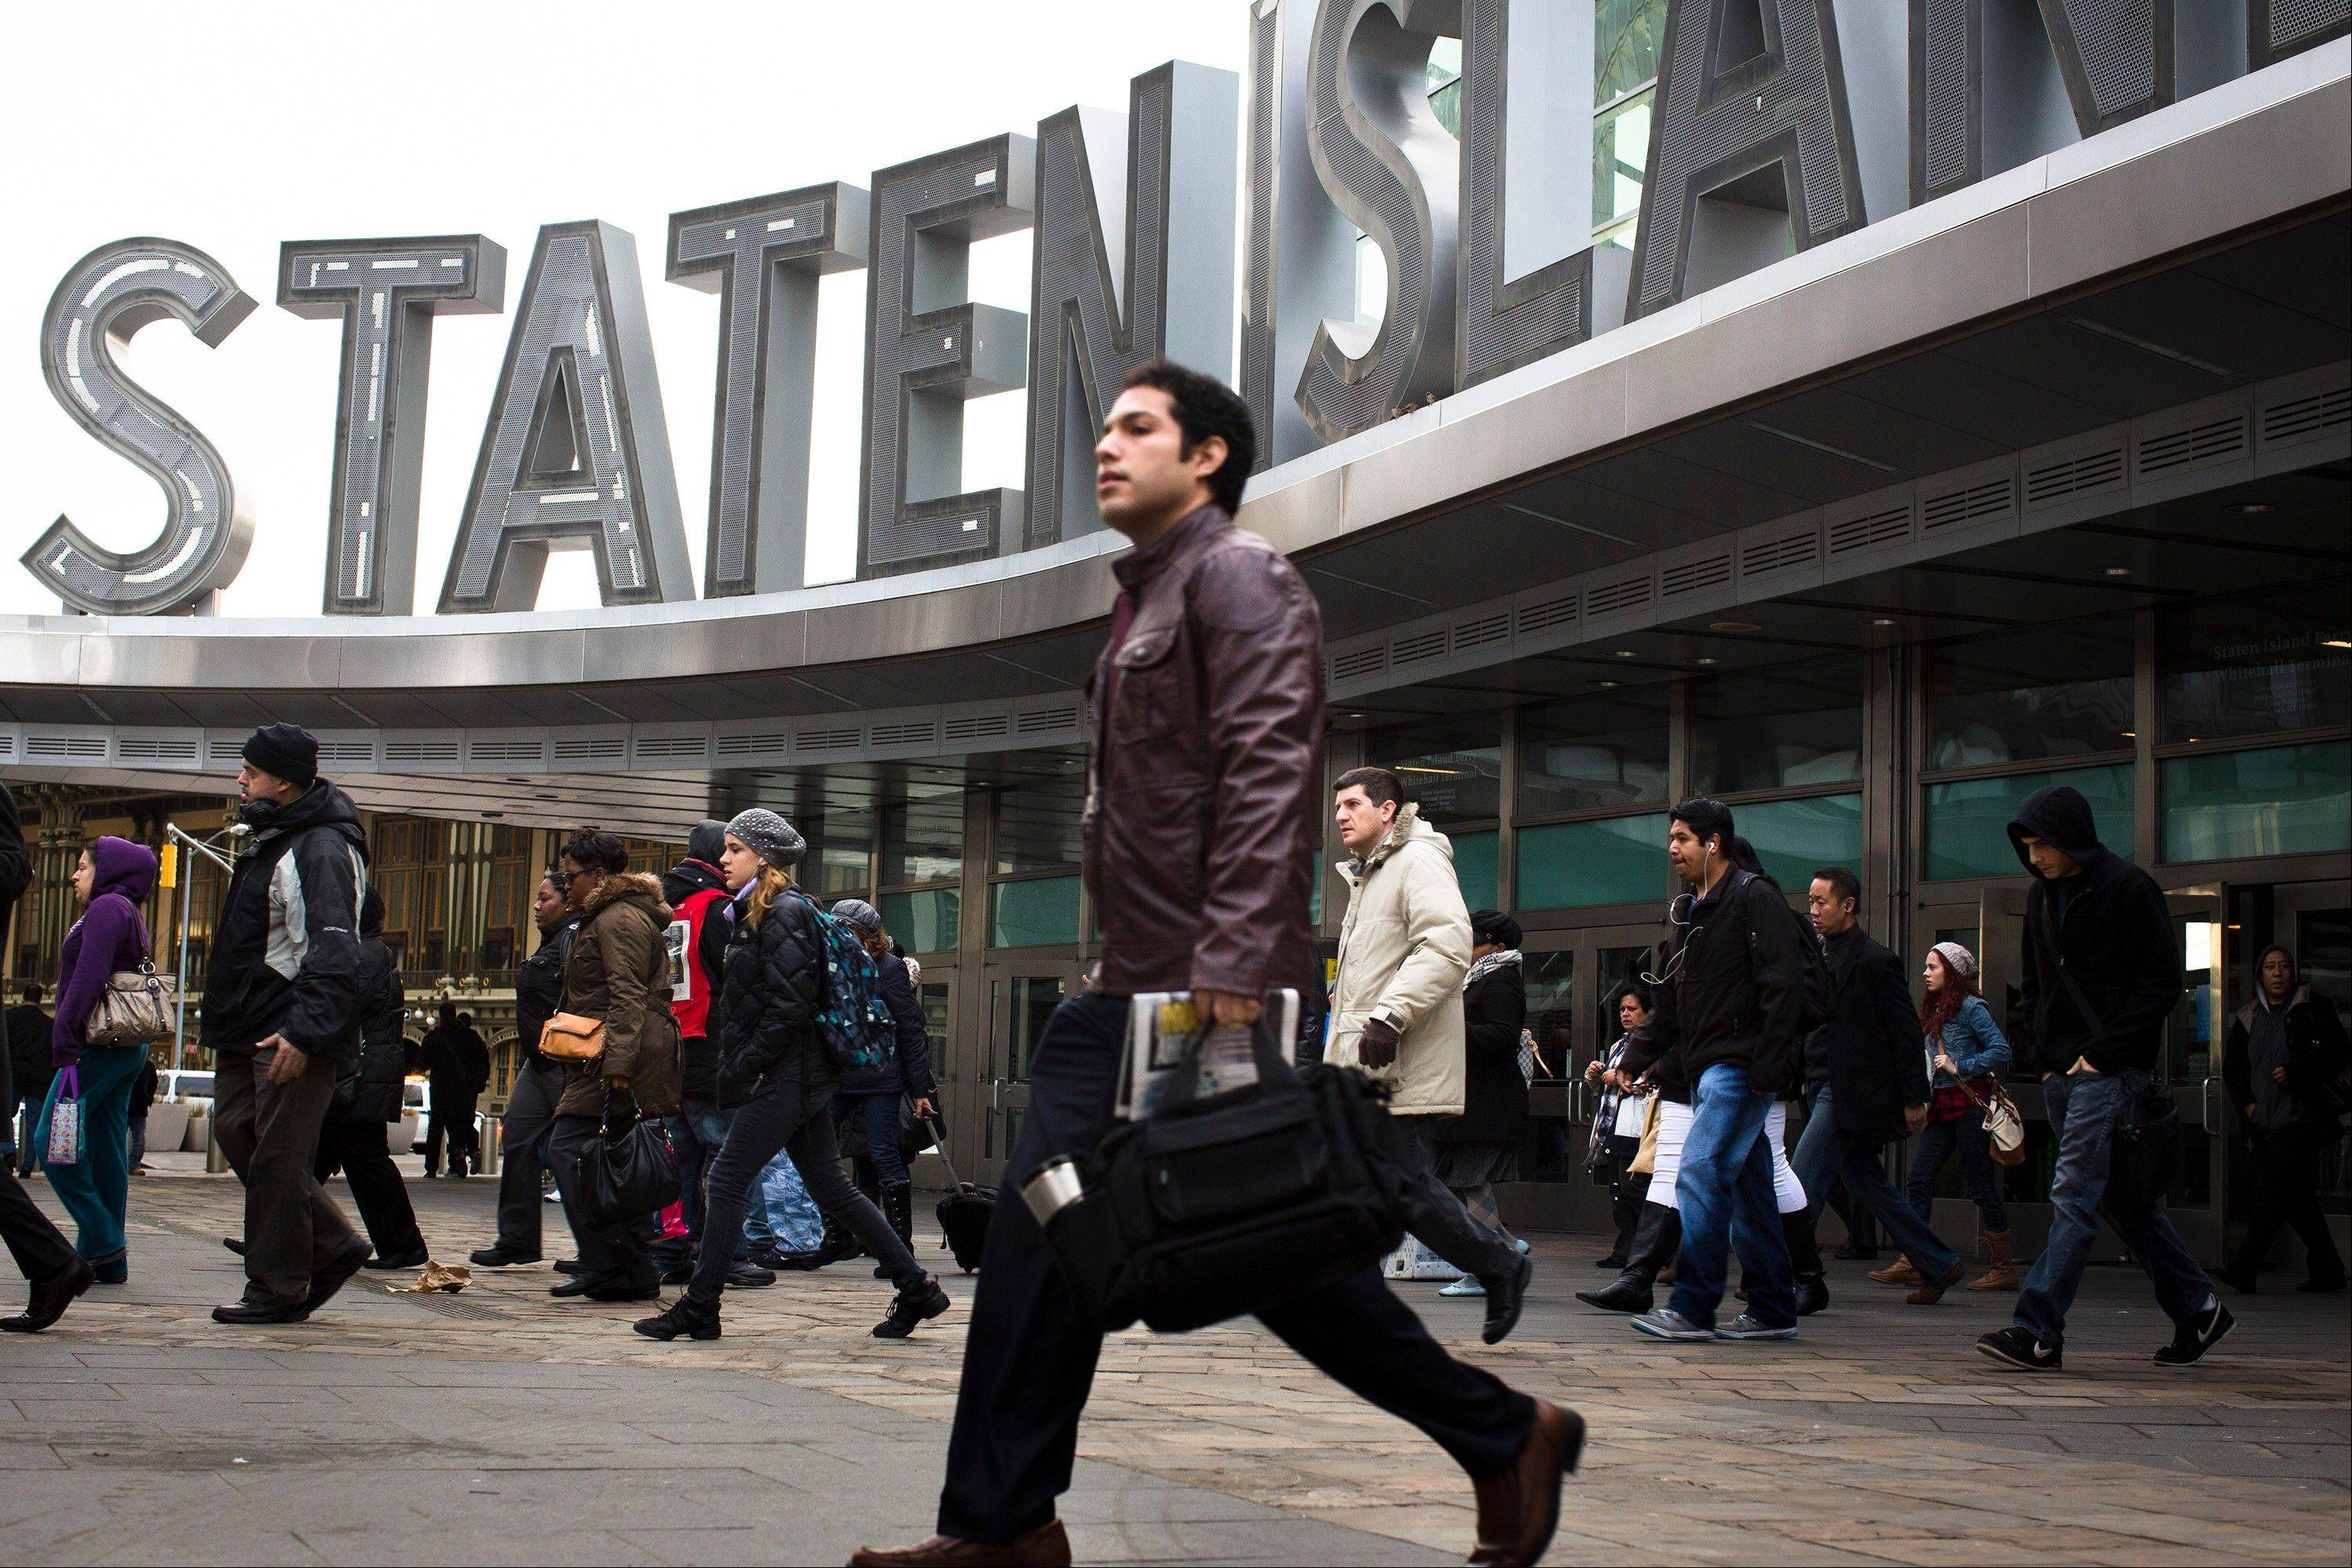 A commuter leaves the Staten Island Ferry terminal, Monday, one week after Superstorm Sandy crashed into the metropolitan area, wreaking havoc and shutting down mass transit services for days, in New York. The island of Manhattan has begun to return to normal following a week of power outages that shuttered businesses and left many residents in the dark.